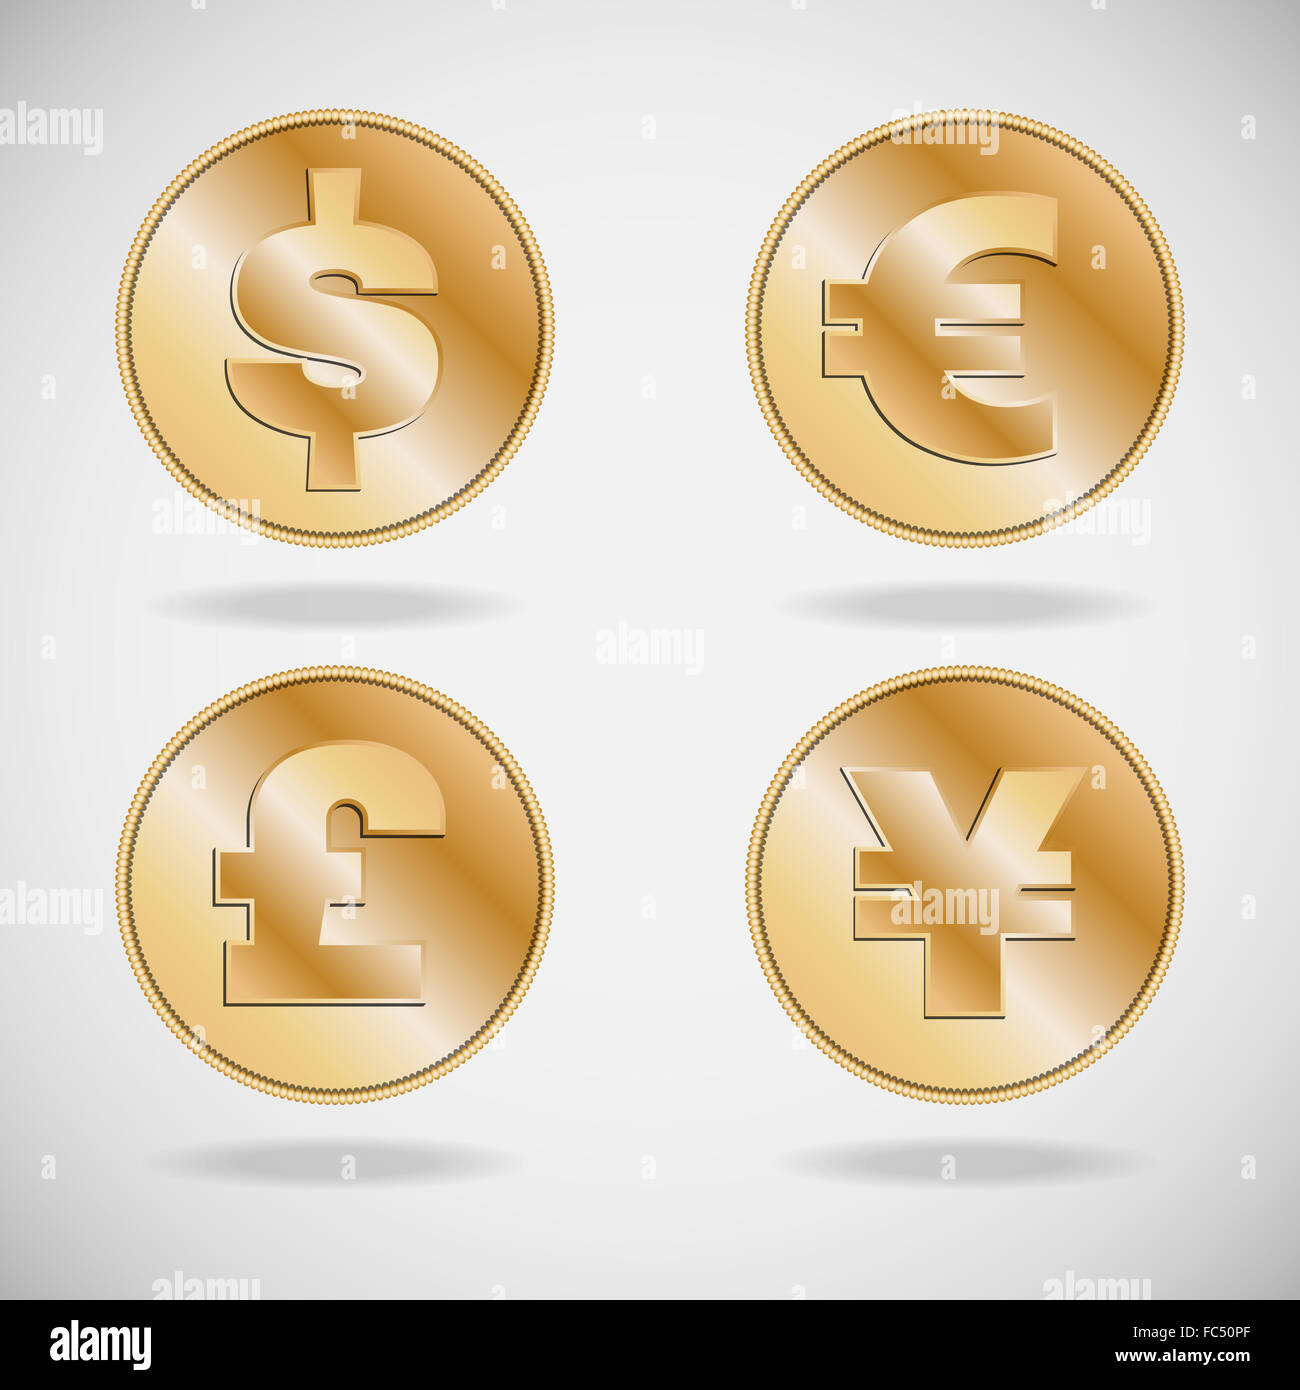 Symbols of various currencies dollar euro pound and yen or yuan symbols of various currencies dollar euro pound and yen or yuan on on gold coins biocorpaavc Images